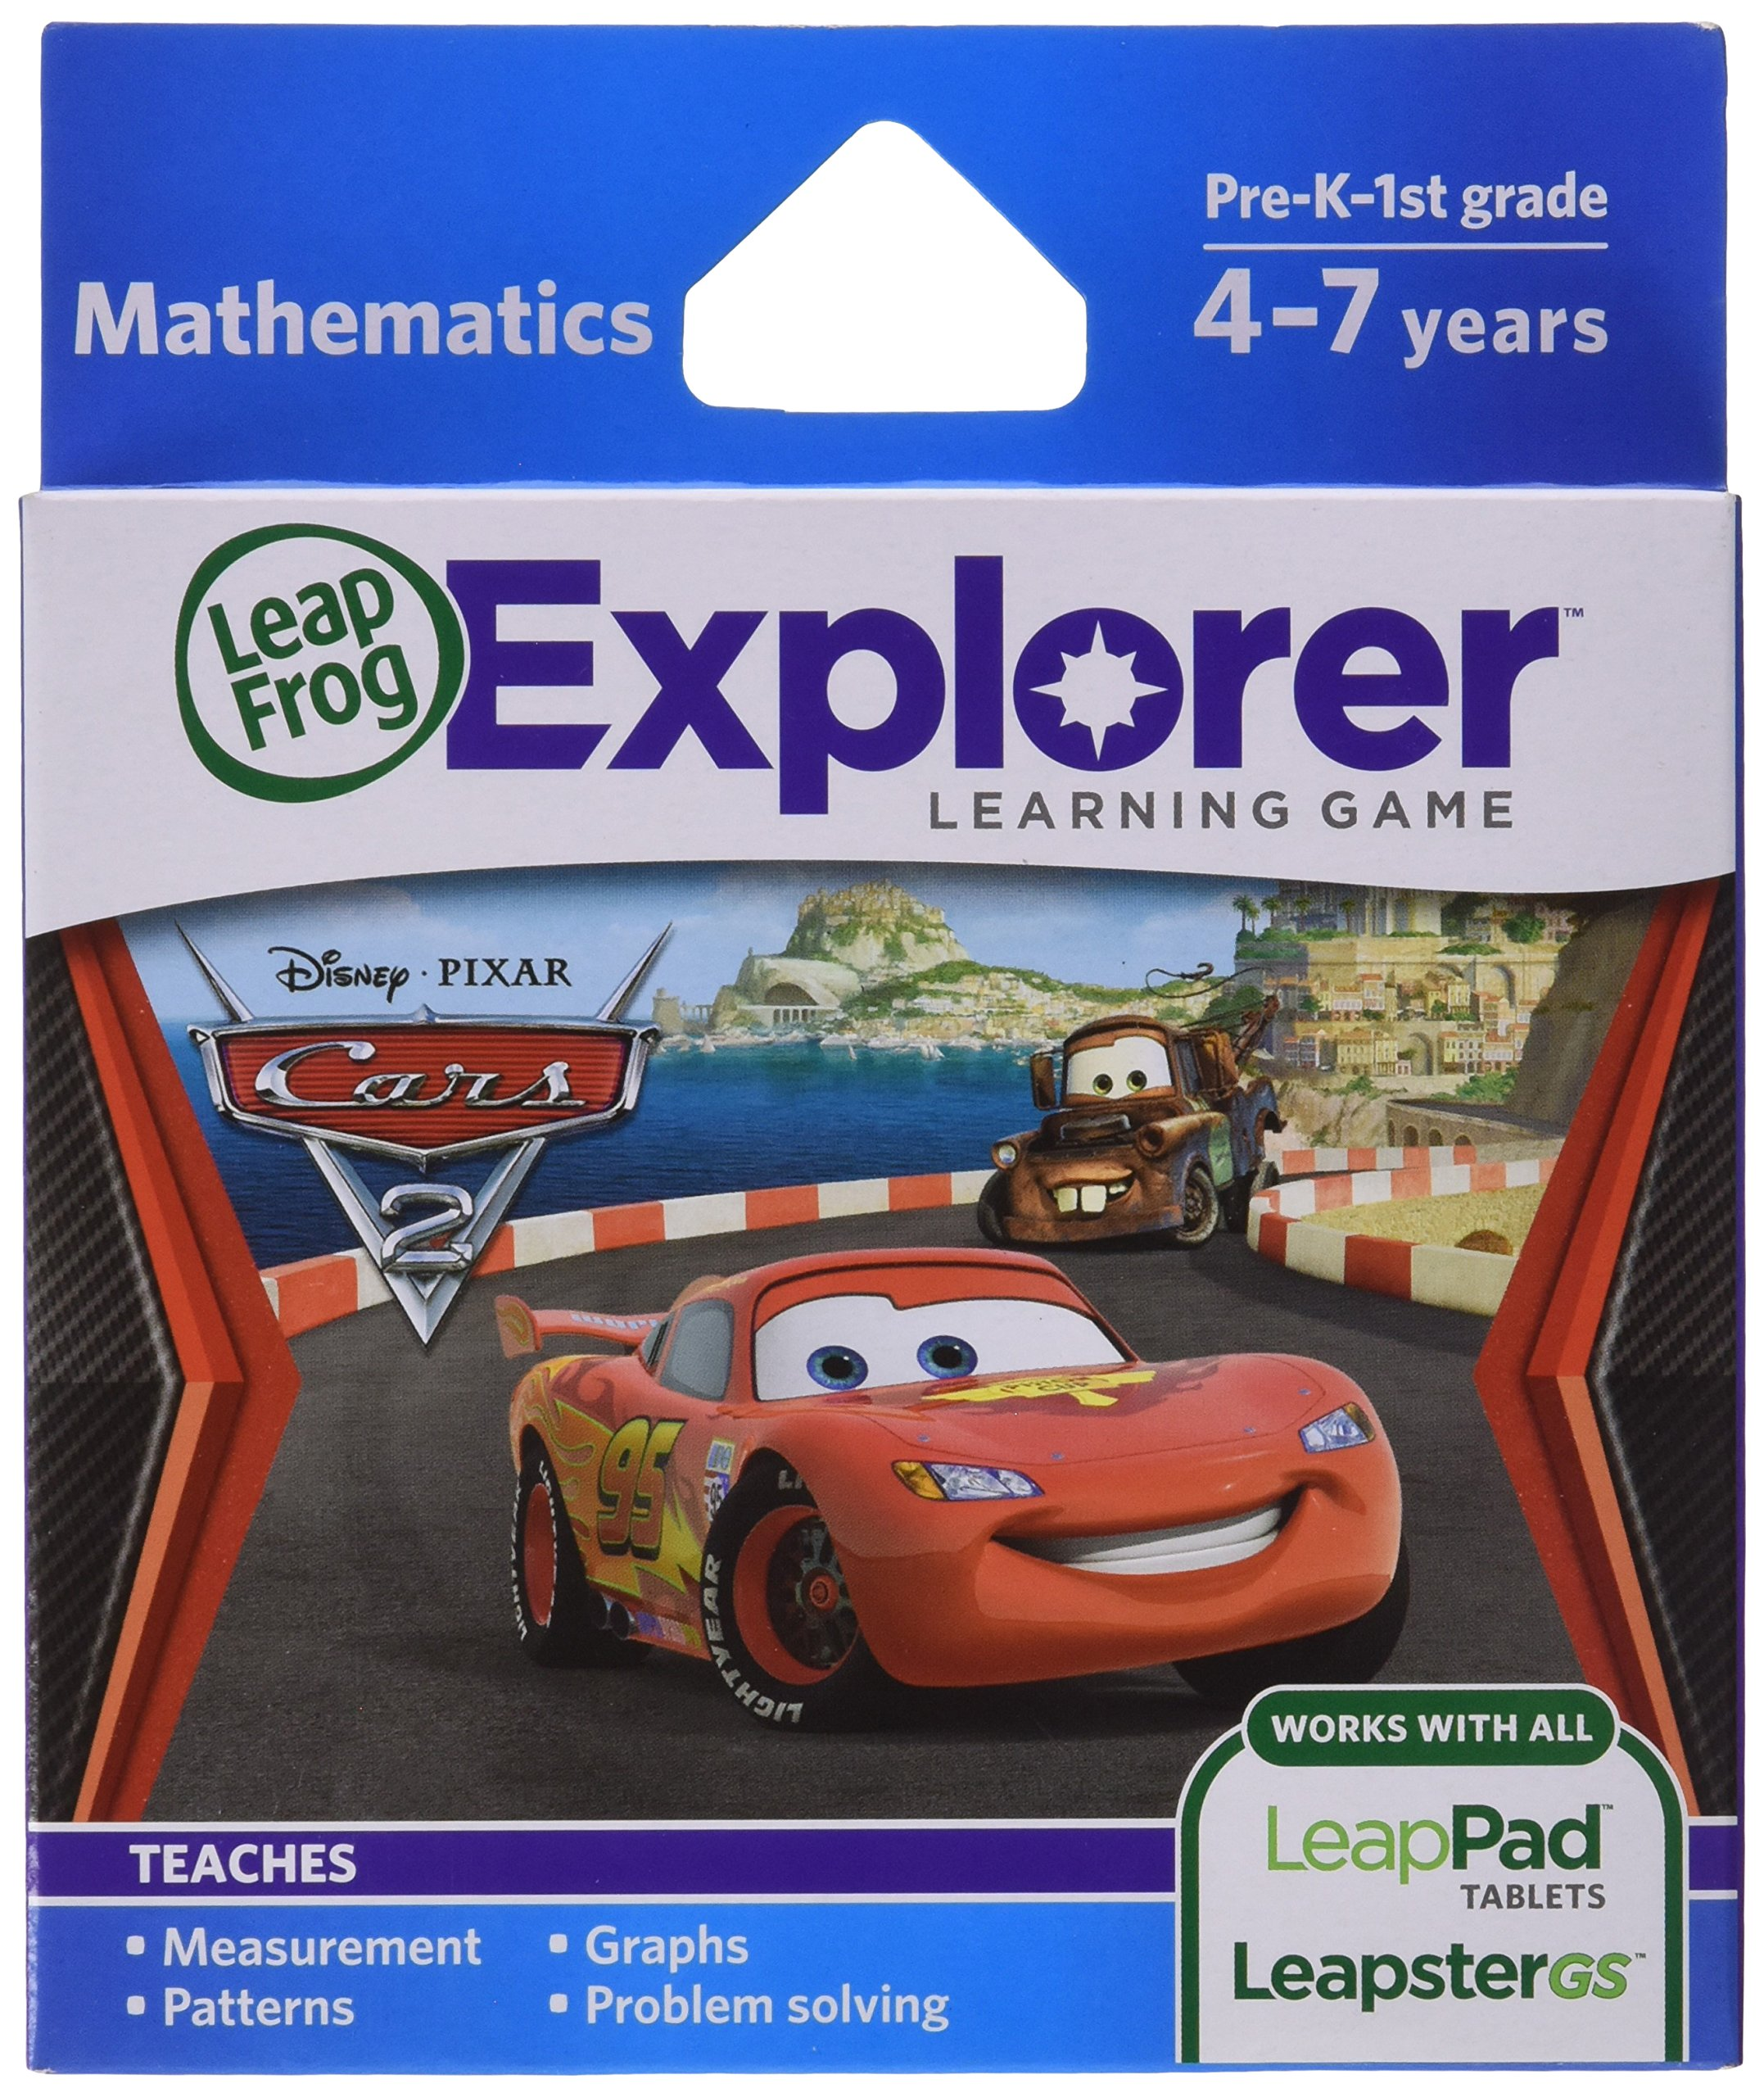 LeapFrog Learning Game Disney-Pixar Cars 2 (works with LeapPad Tablets, Leapster GS and Leapster Explorer) by LeapFrog